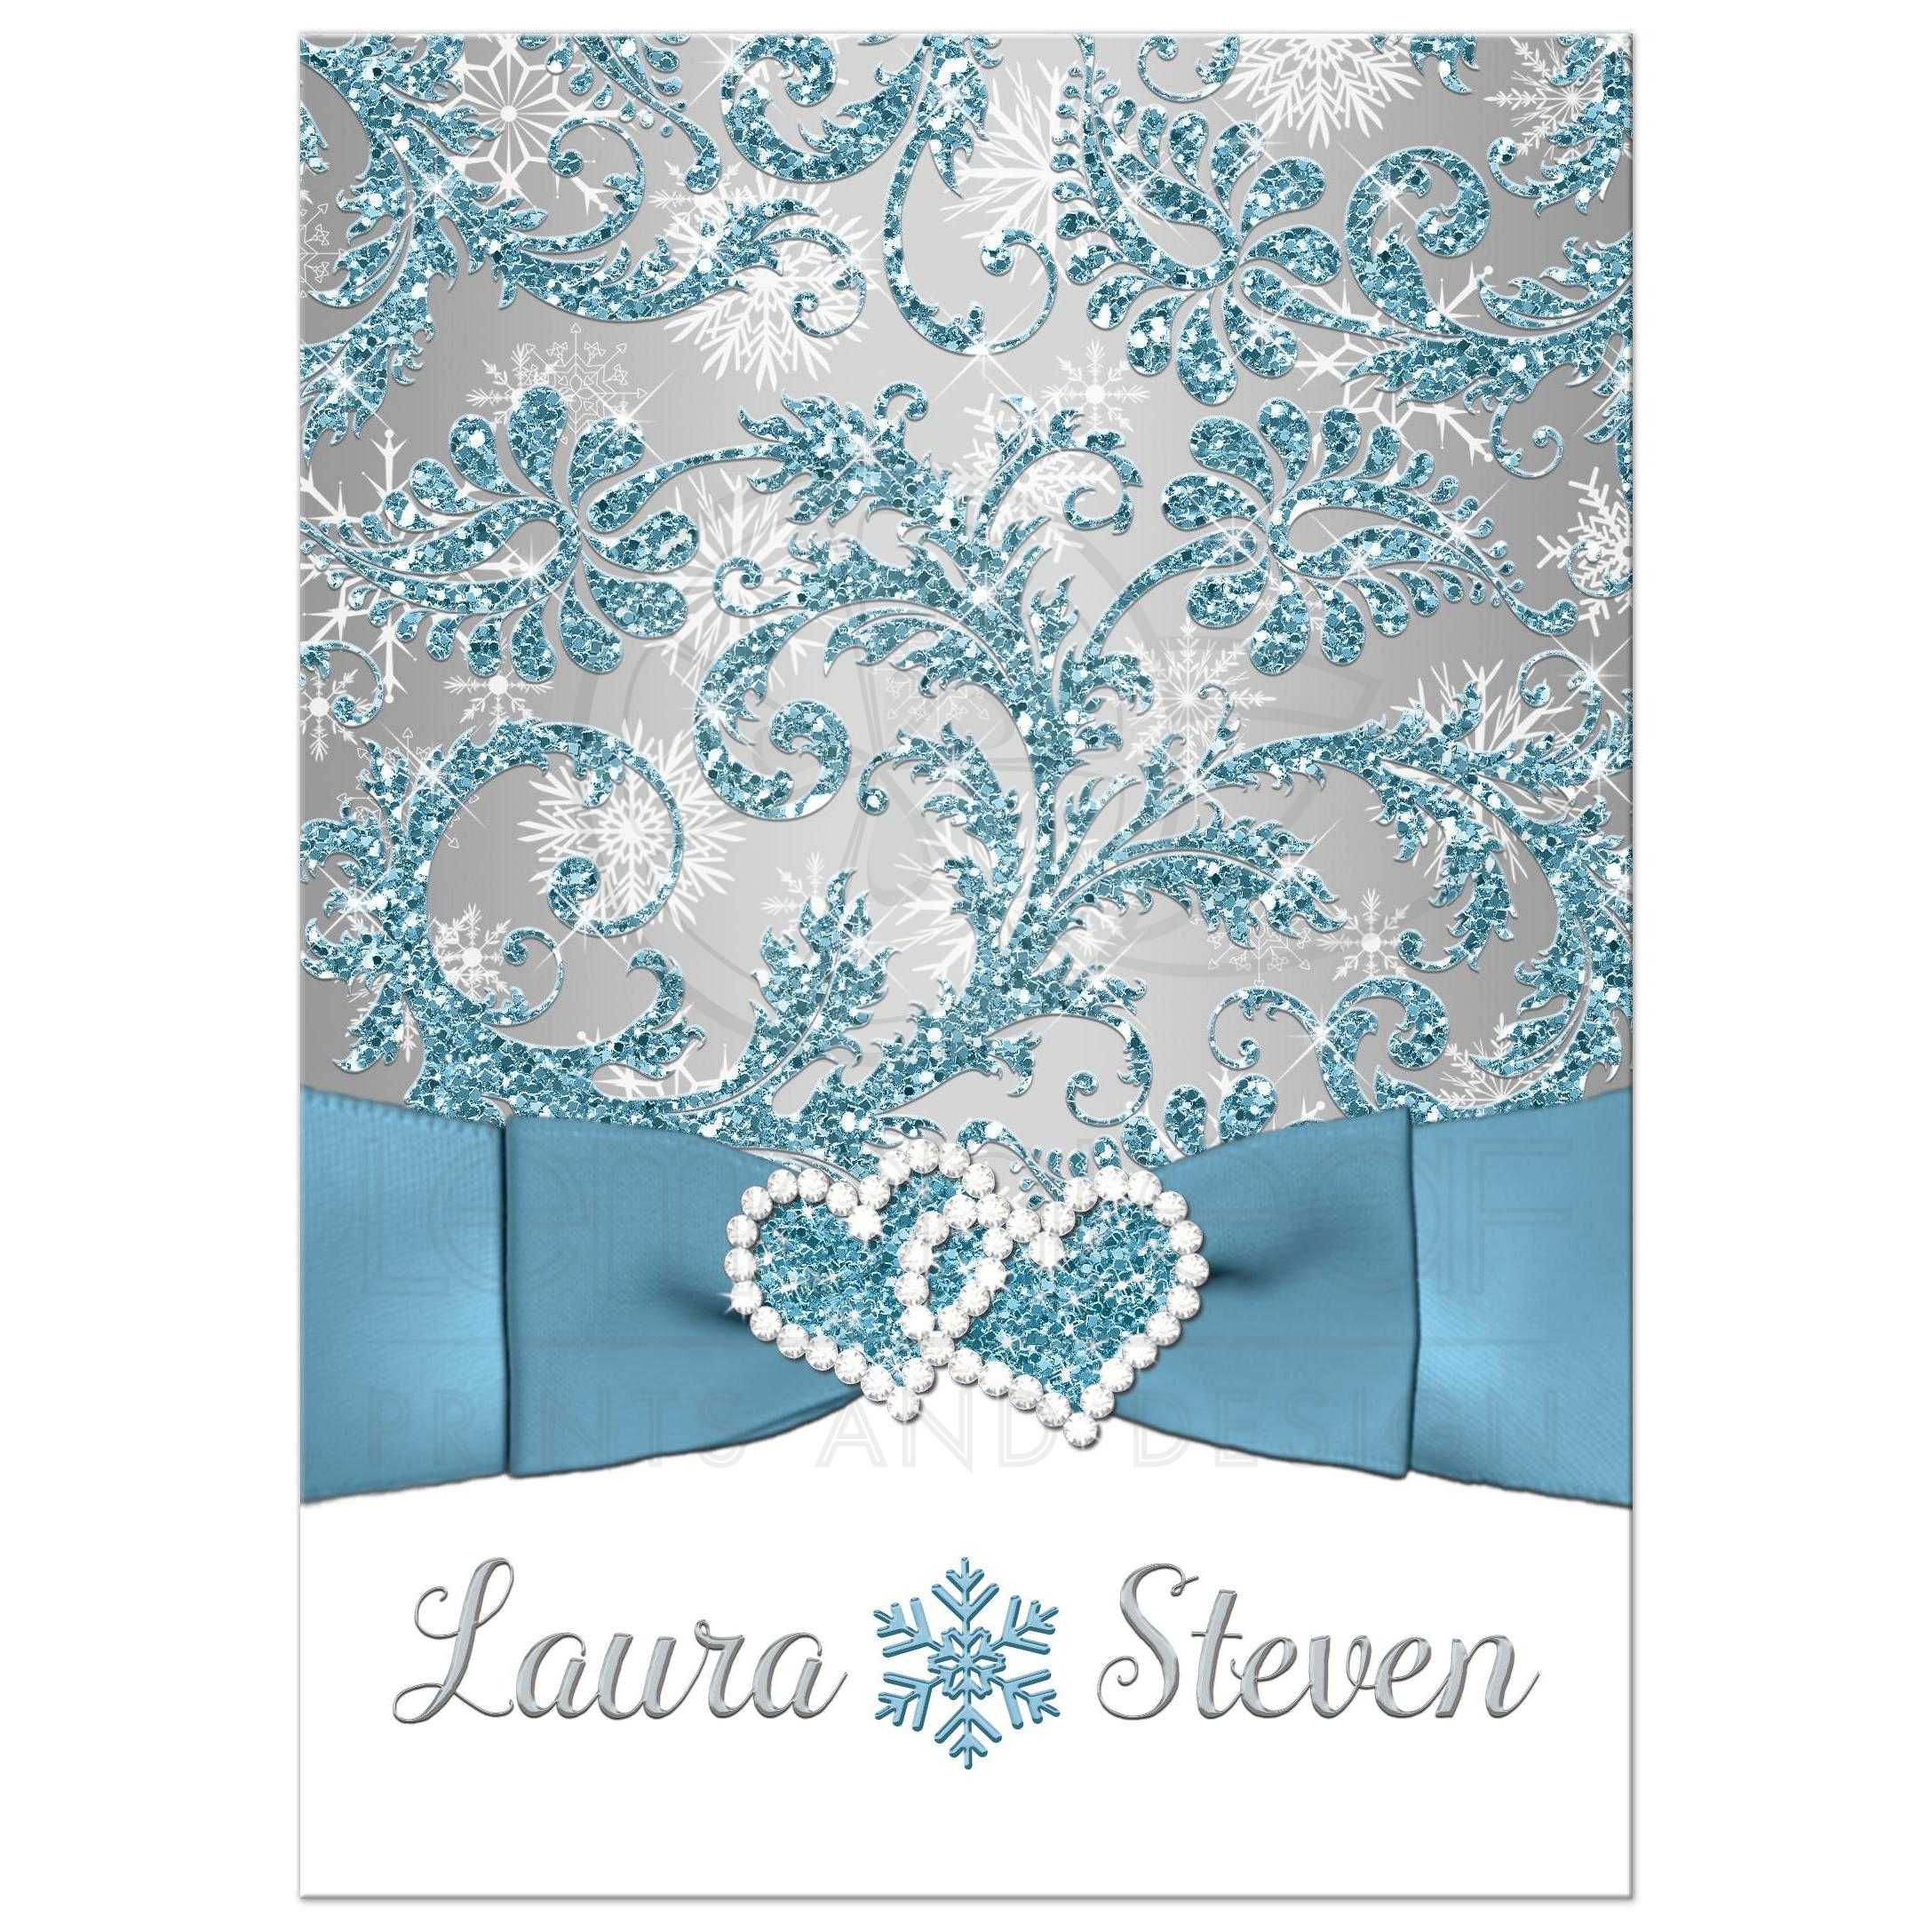 Winter Wonderland Wedding Invitation In Ice Blue Silver And White Snowflakes